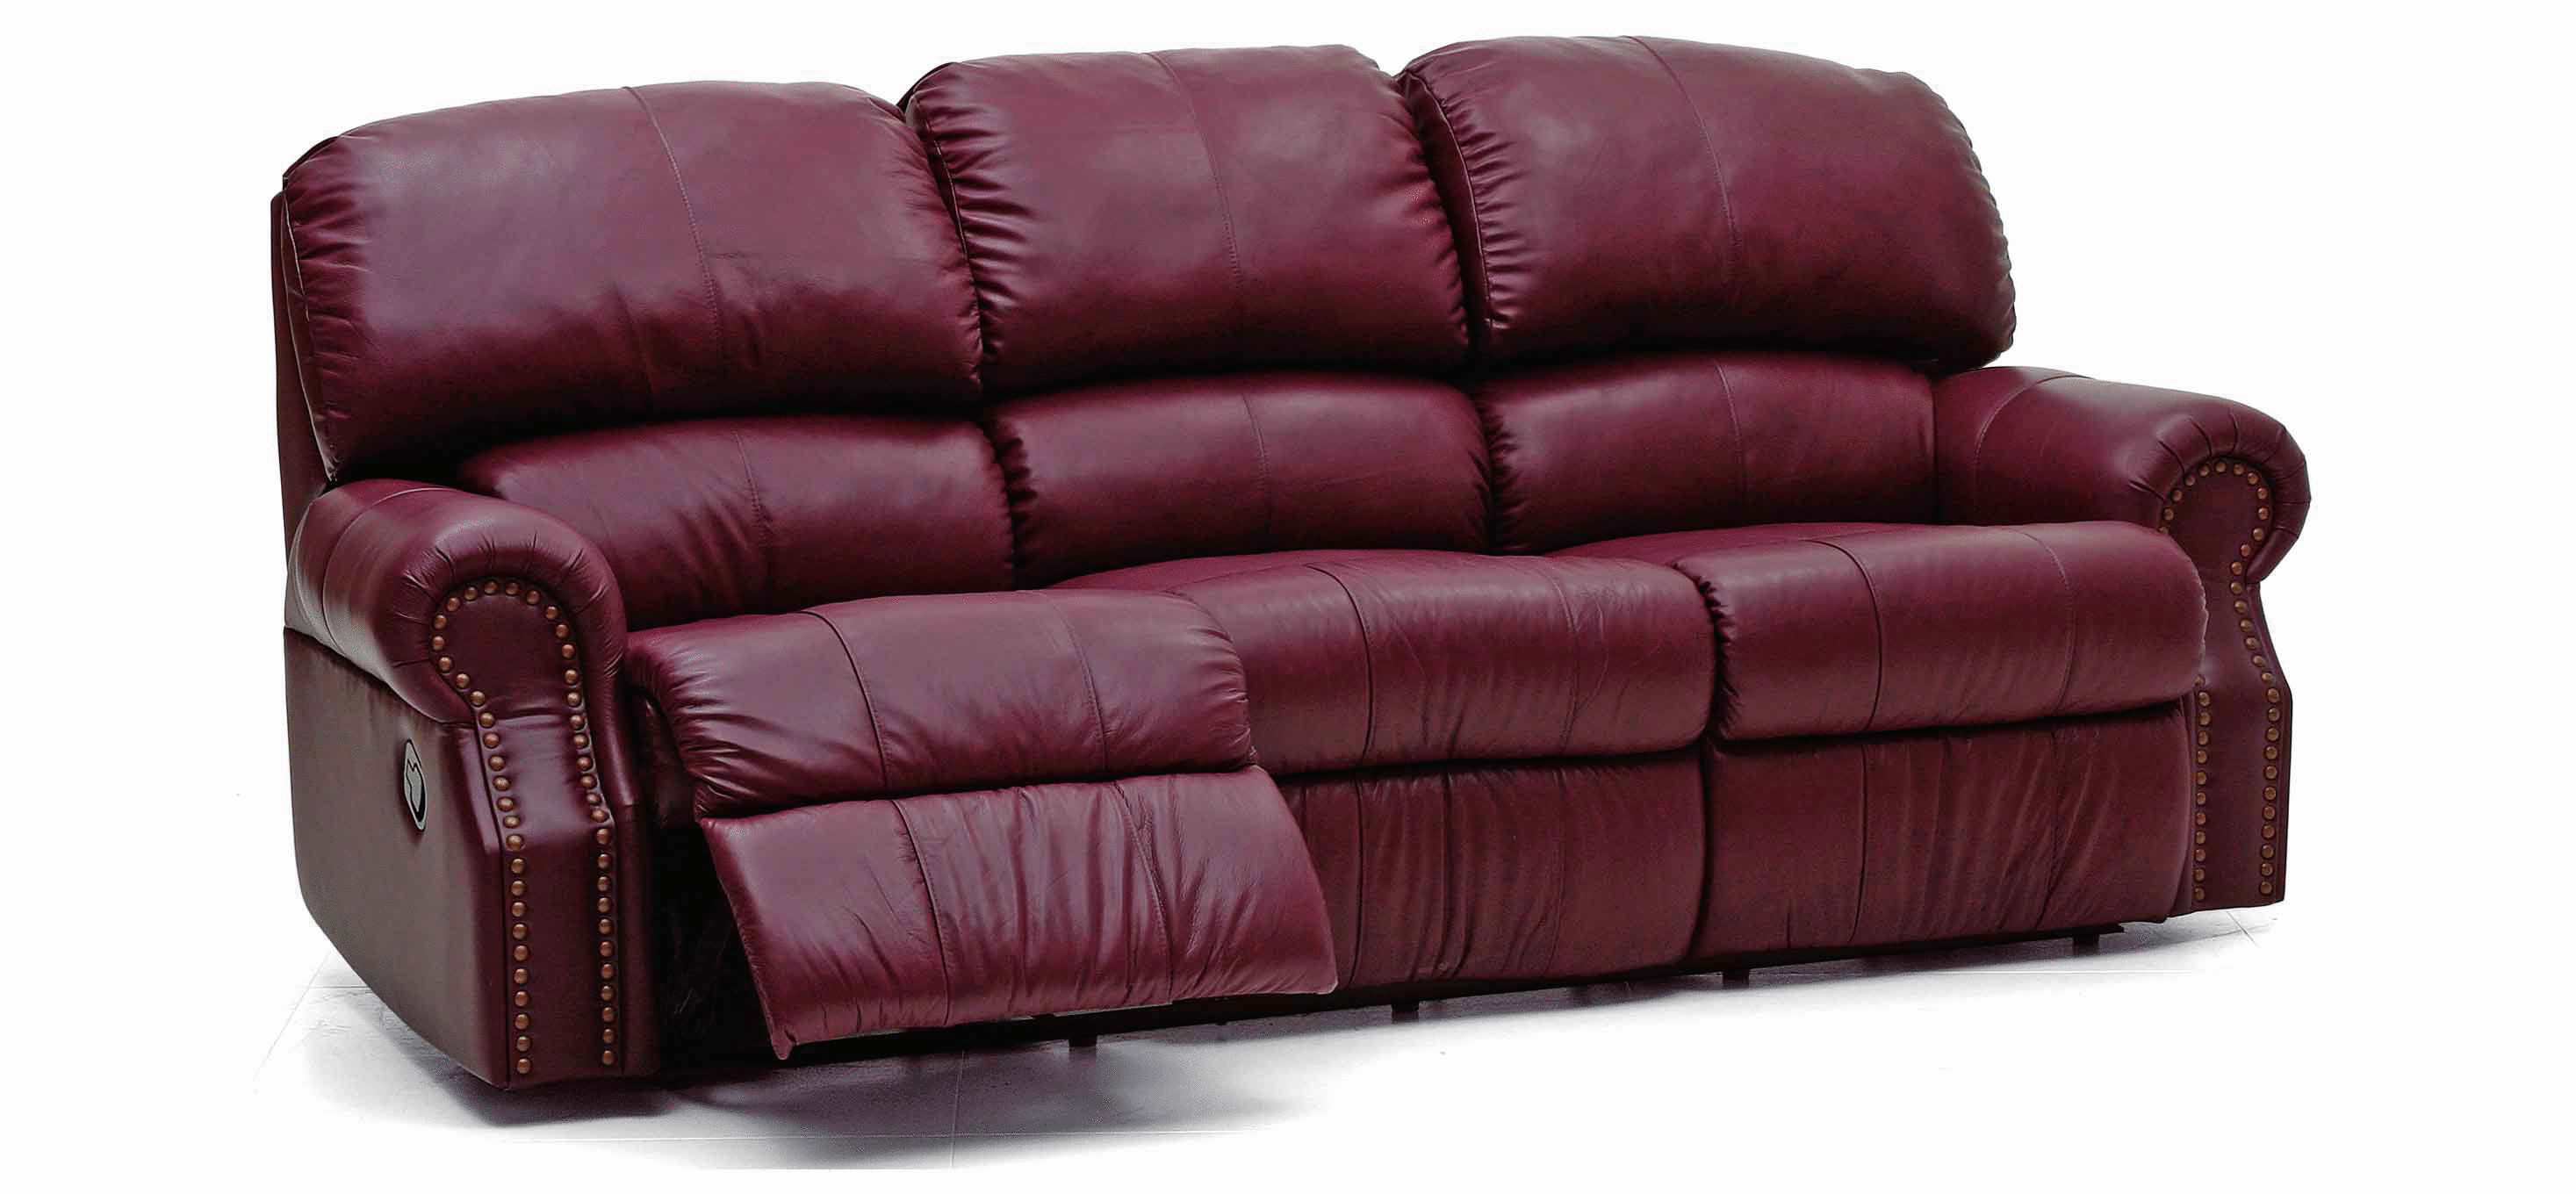 301 moved permanently for Leather reclining sofa